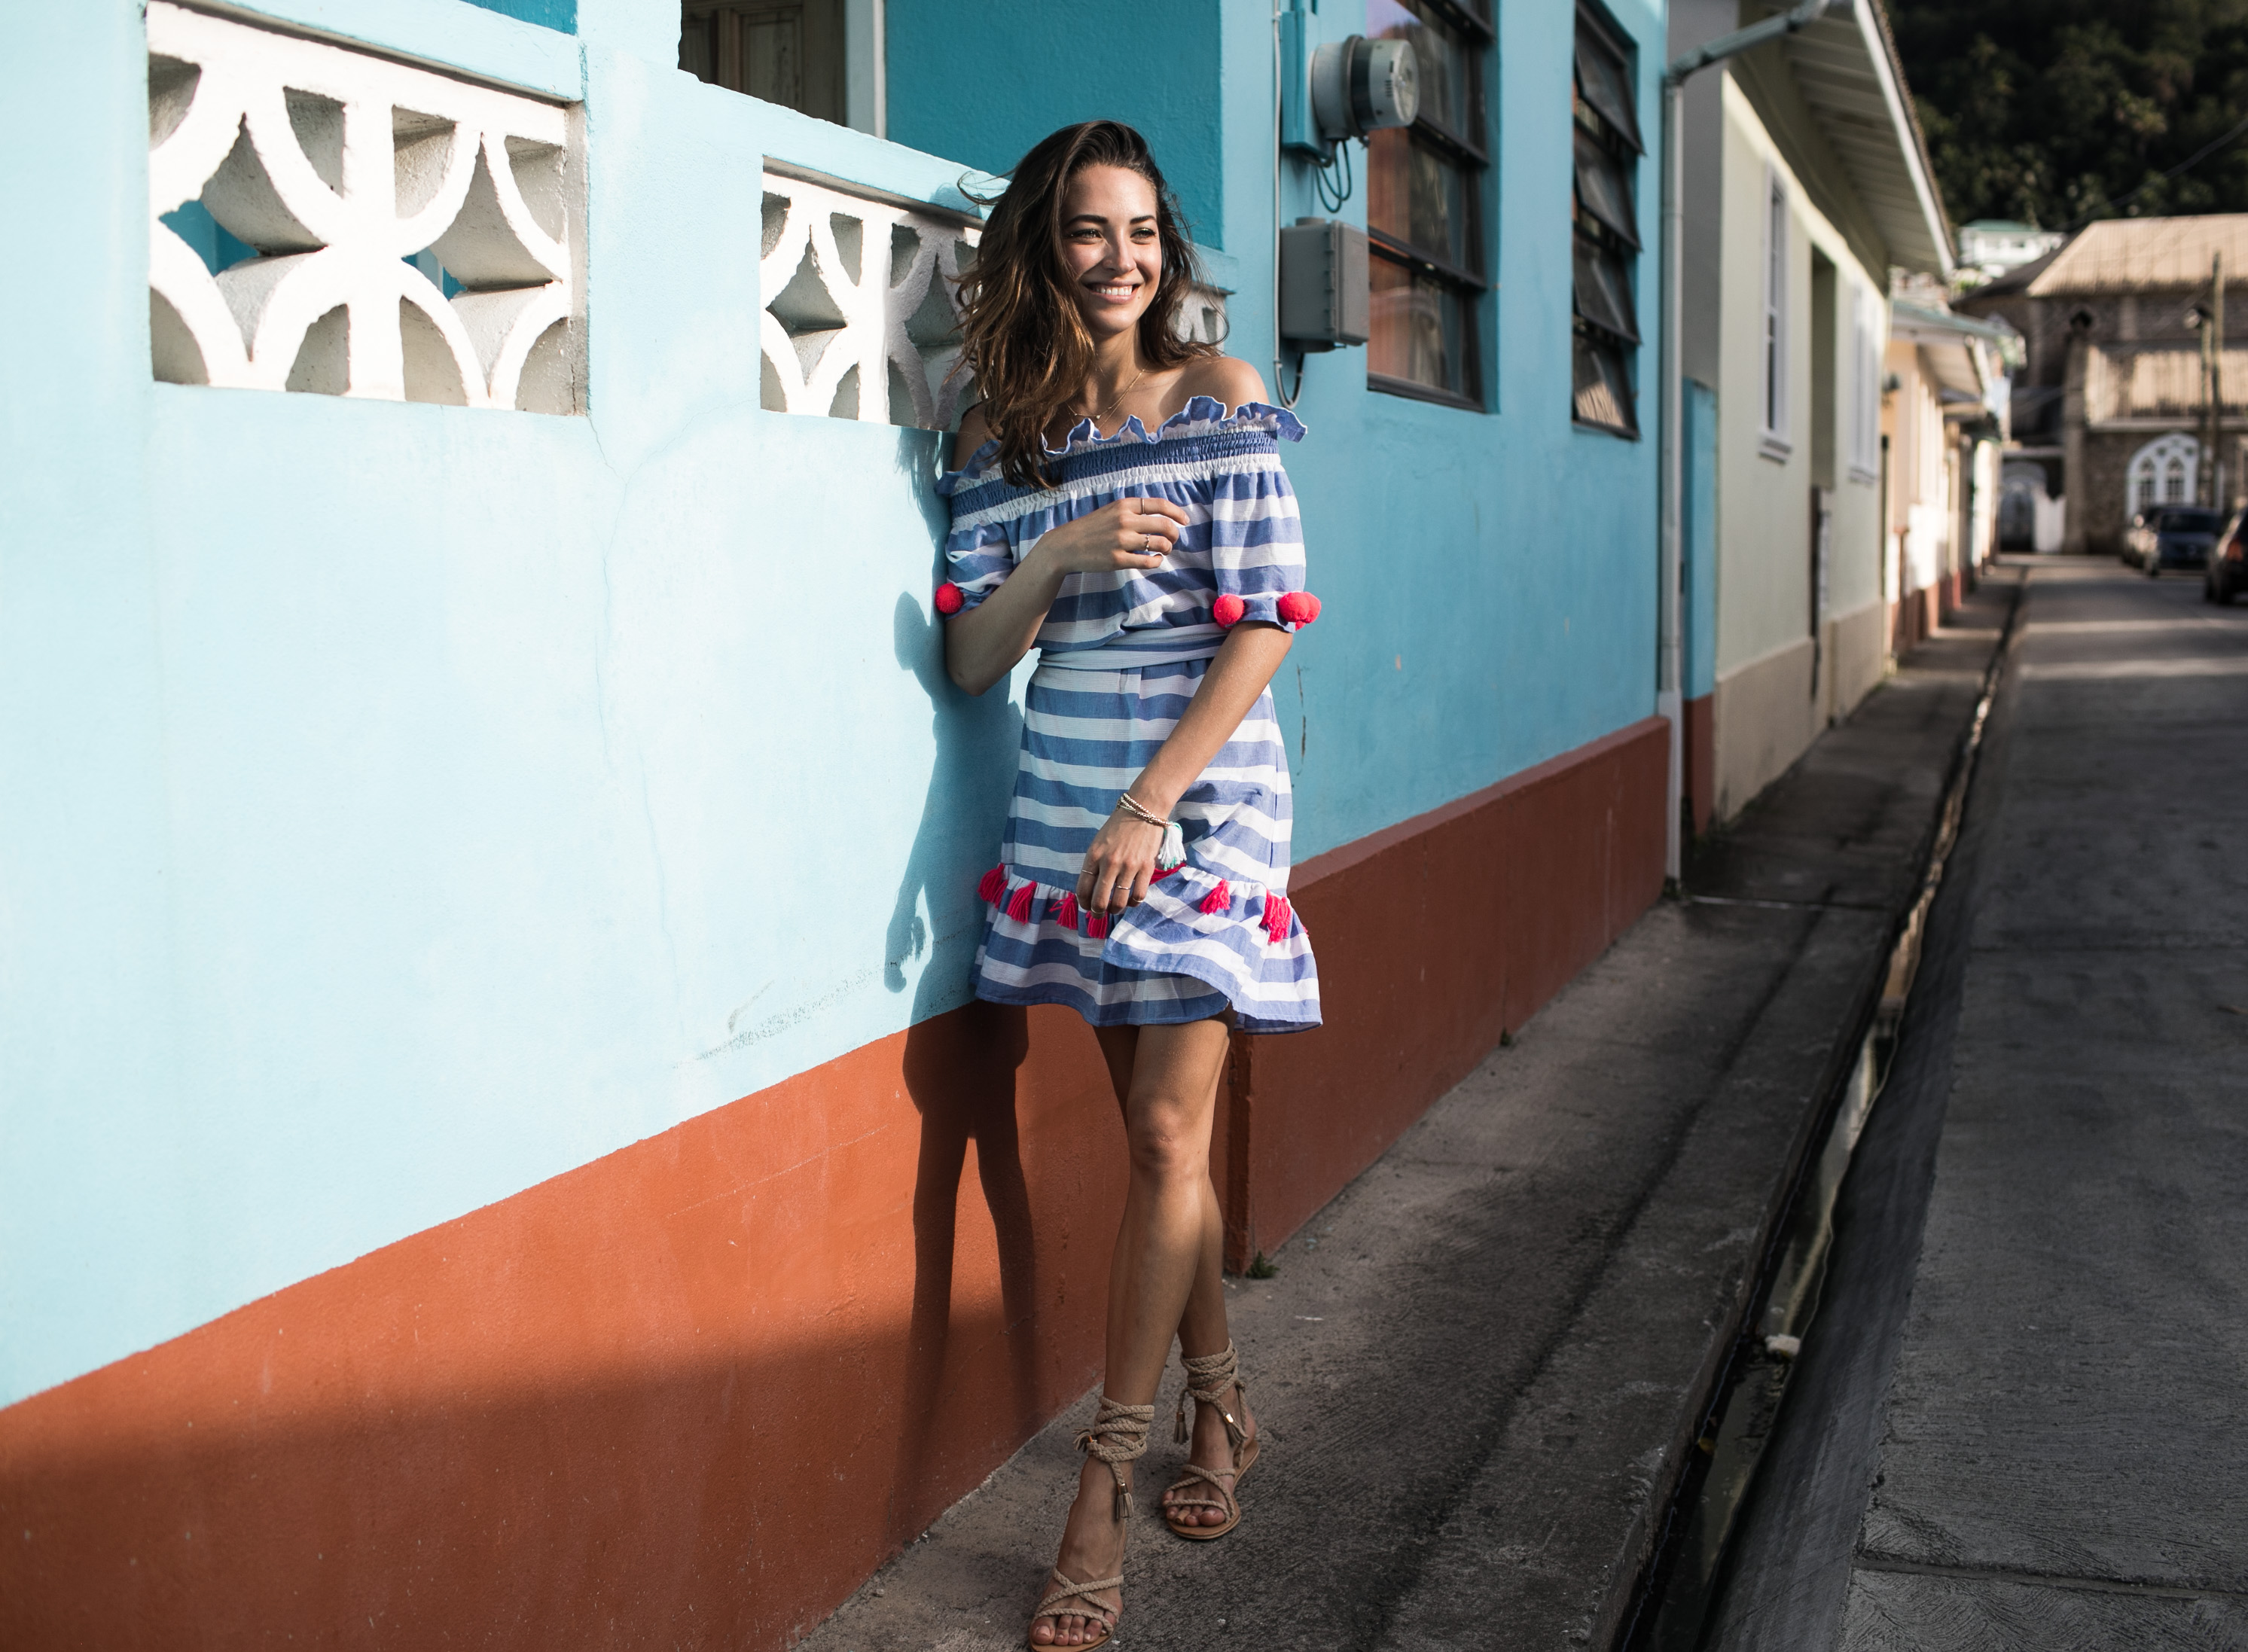 Fashion Photographer Samuel Black shoots model blogger Xenia Mz in Sundress Boho Luxe Style in St Lucia